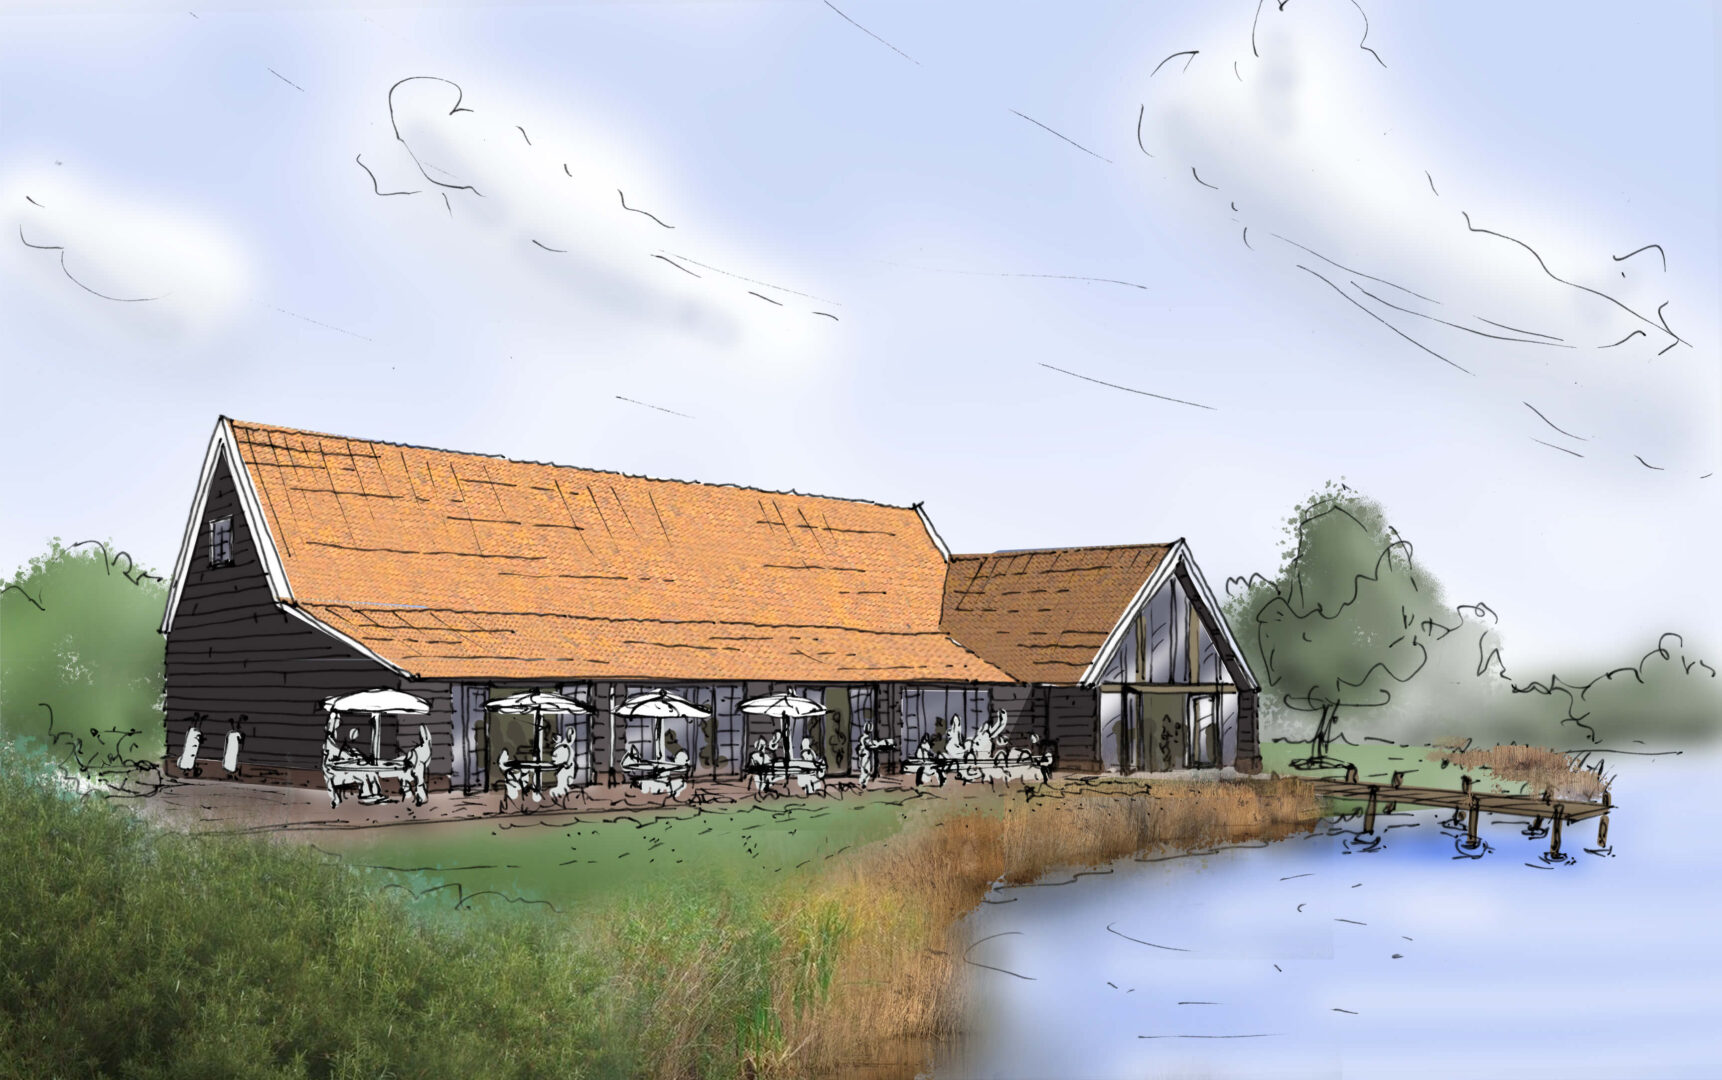 Architect-Noord-Holland-Architectenbureau-Zijlstra-Schipper-architecten-Clubhuis-restaurant-golfbaan-zaandam-01